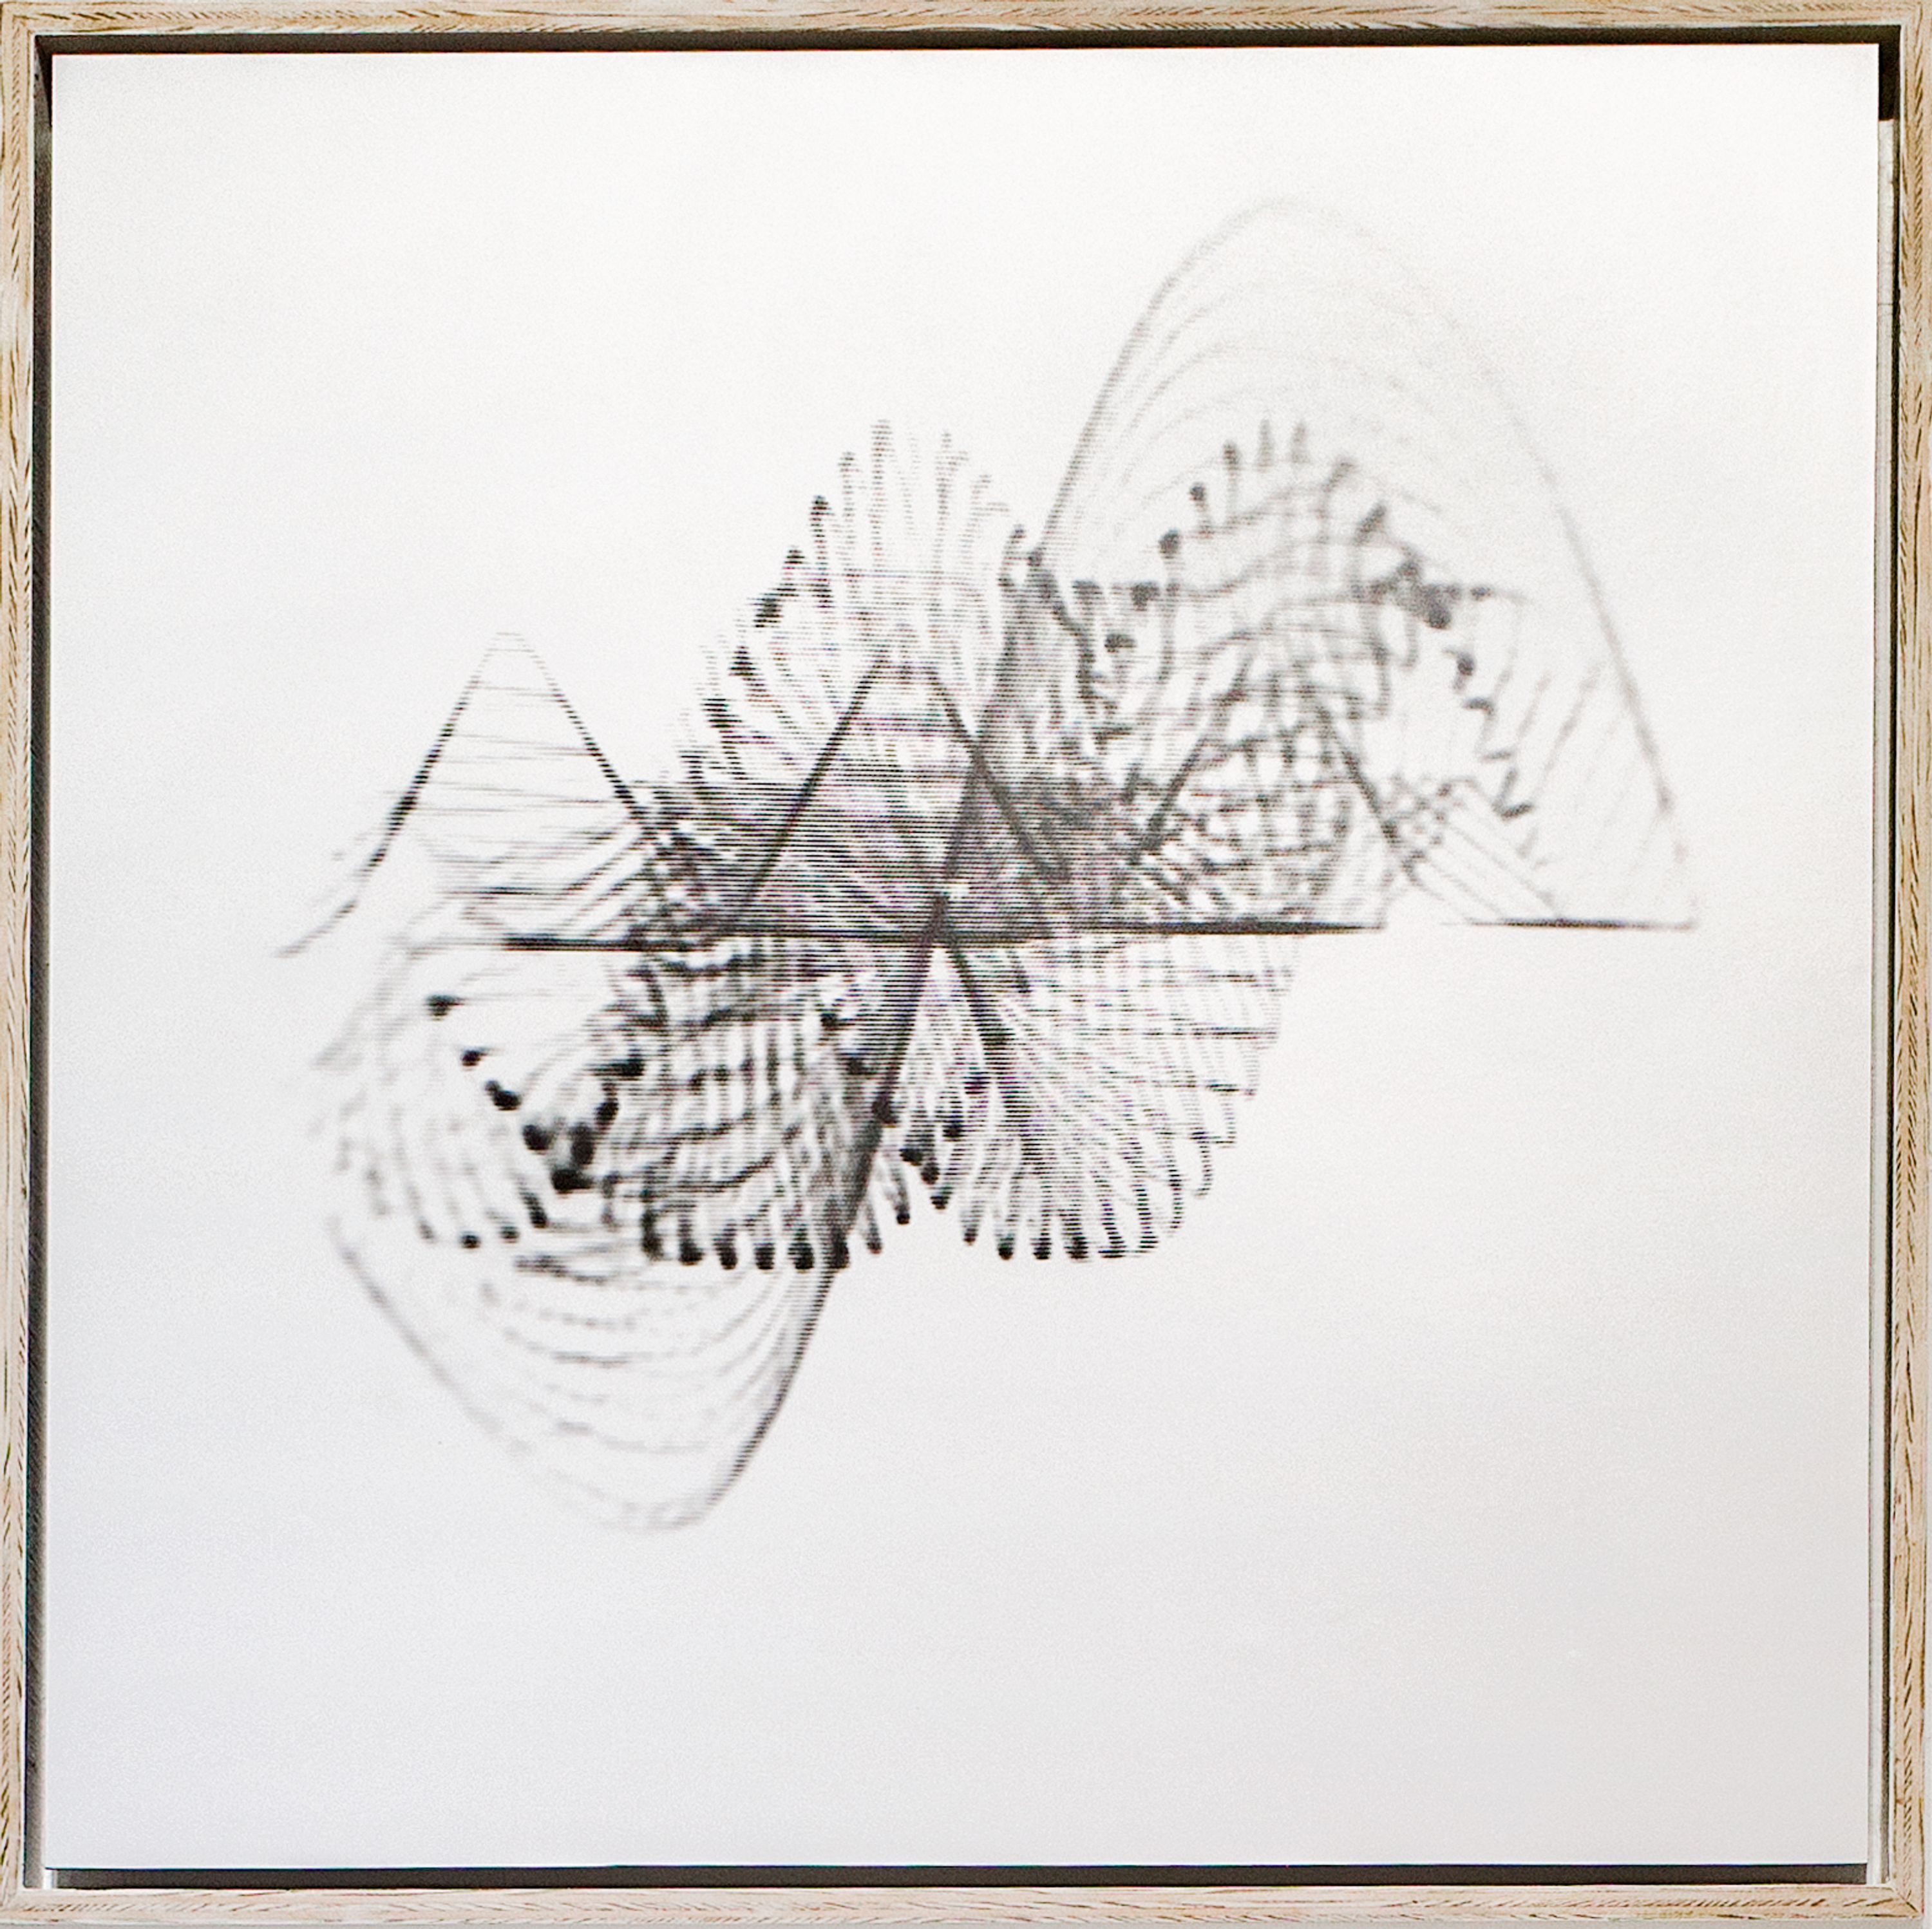 Mountains And Valleys by Antti Pussinen, Luisa Catucci Gallery (2 of 3)